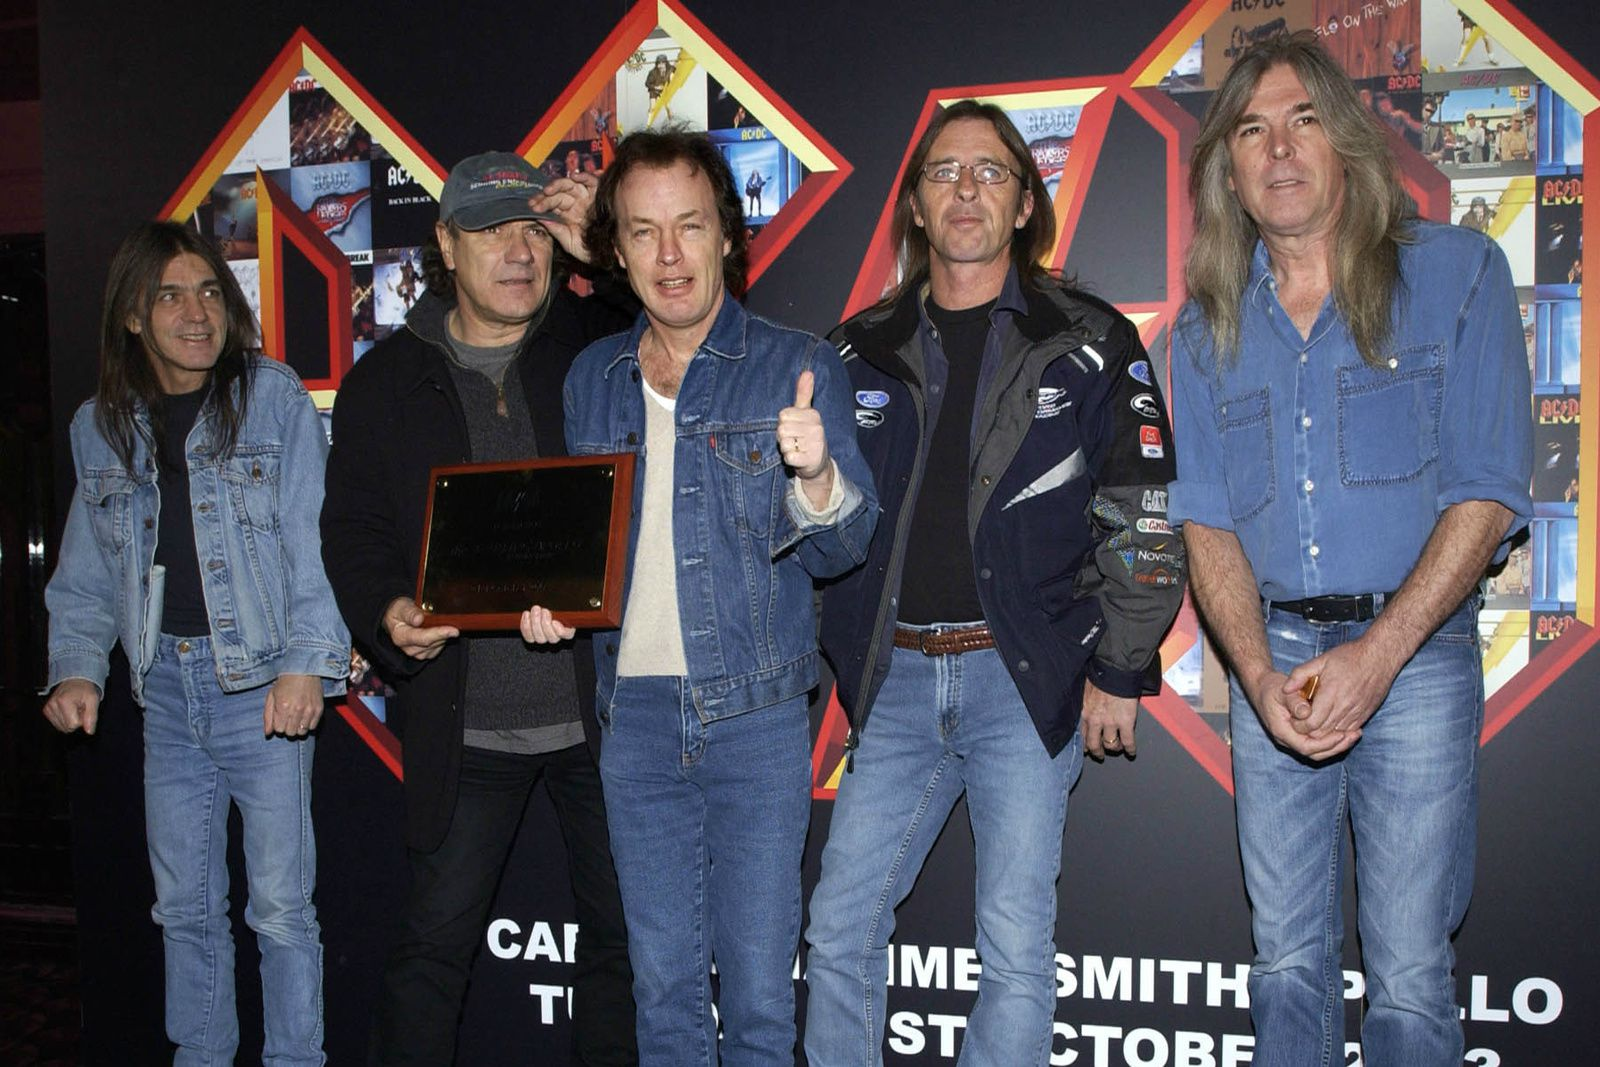 Malcolm Young, Brian Johnson, Angus Young, Phil Rudd and Cliff Williams, AC/DC at the Hammersmith Apollo (2003)